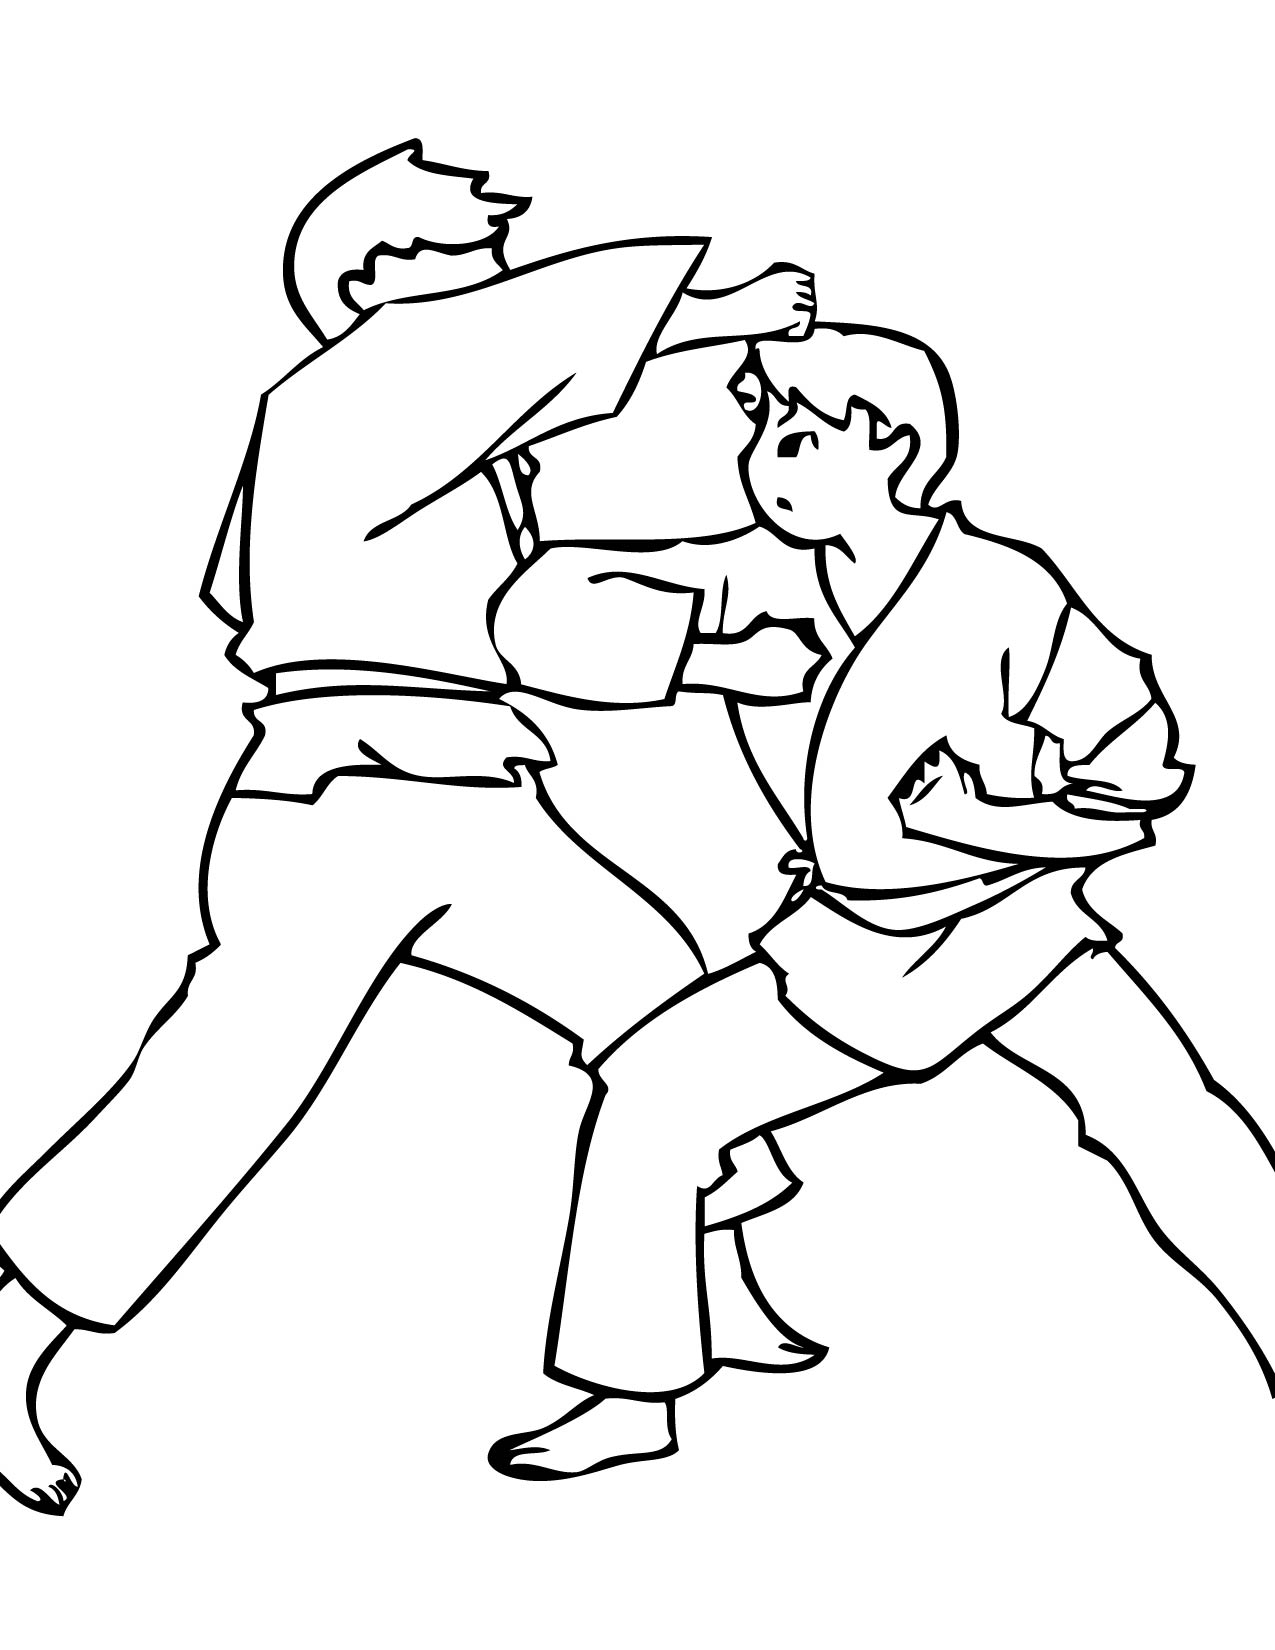 Free coloring pages karate - Free Coloring Pages Karate 2